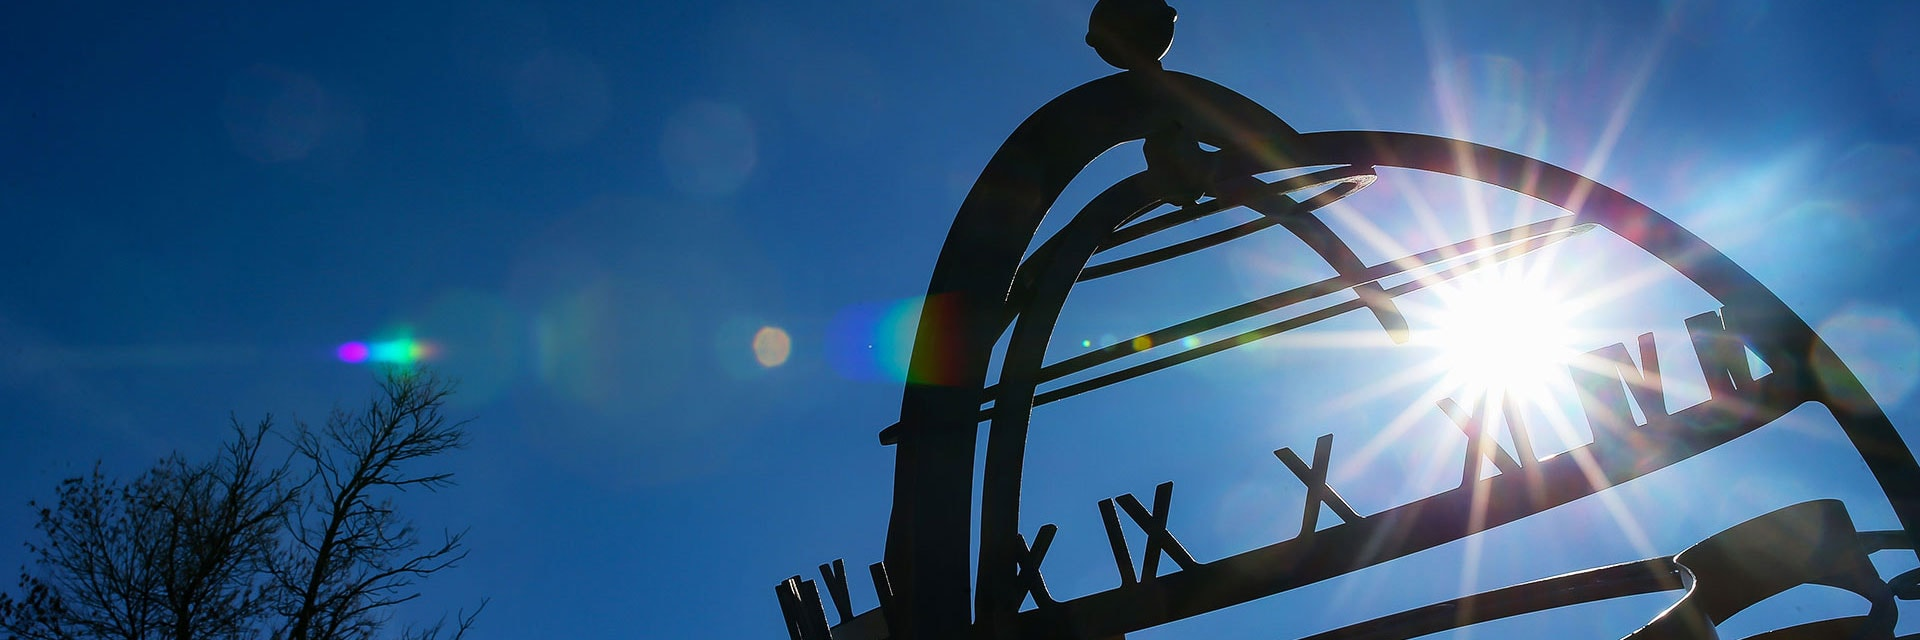 UND sundial with lens flare